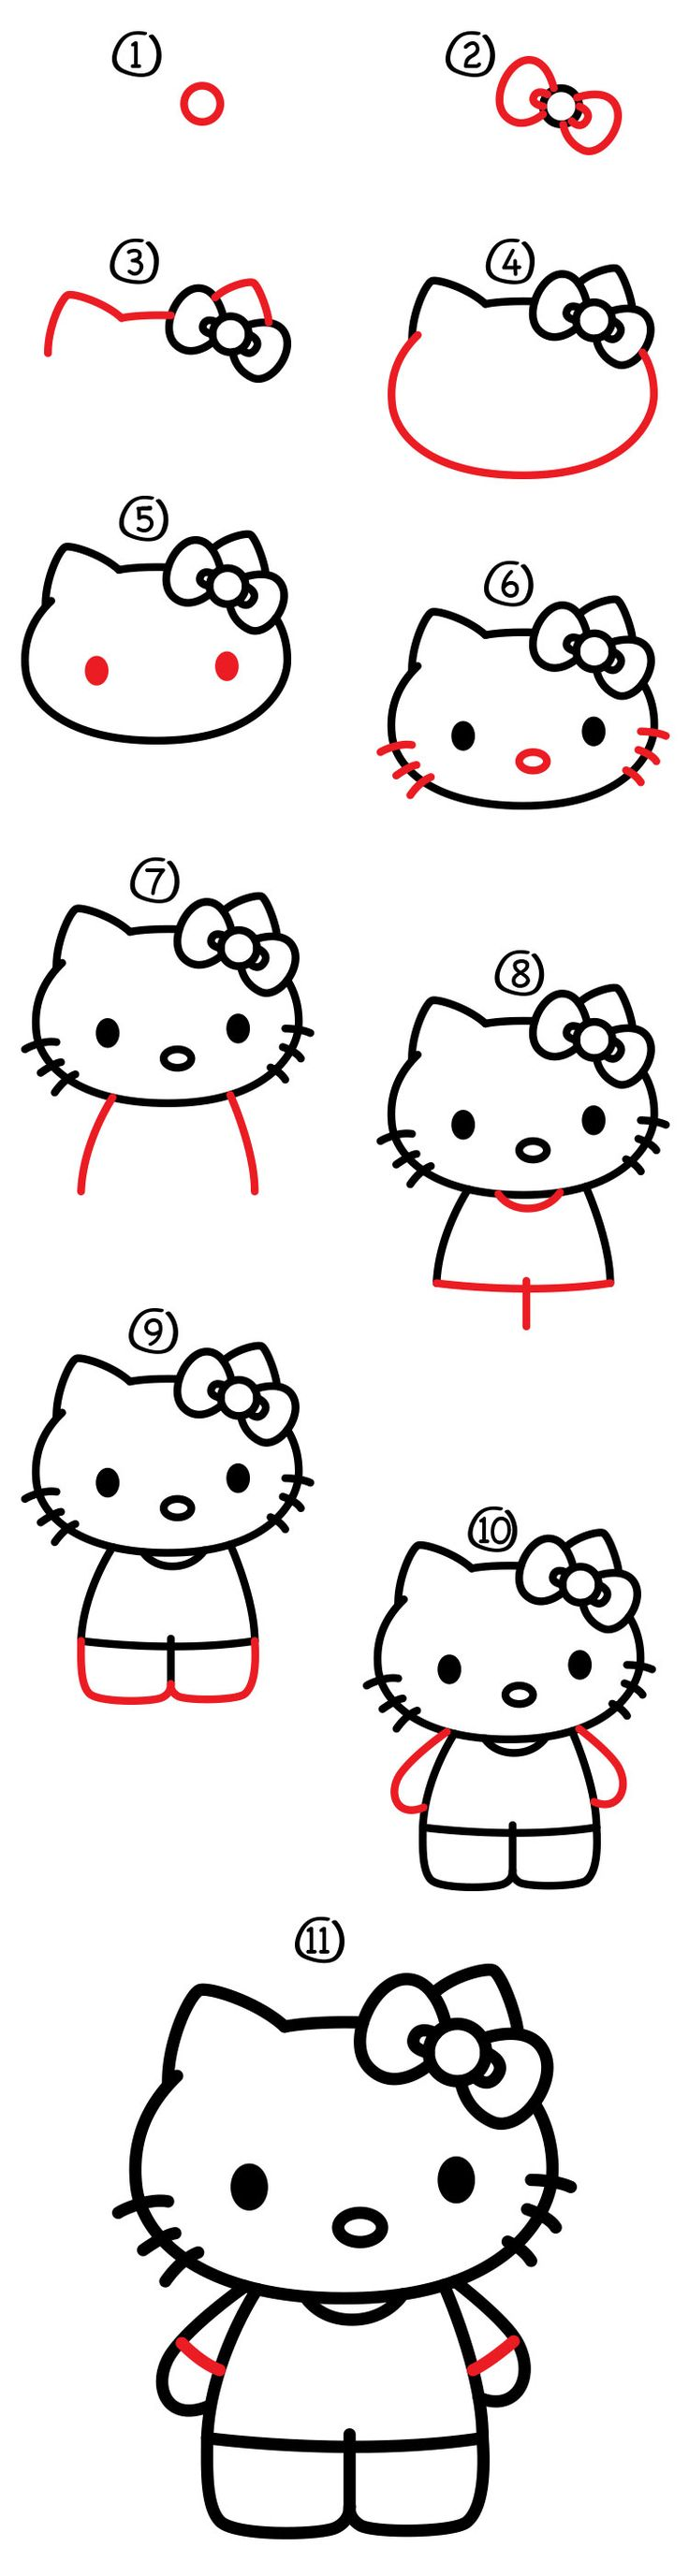 Follow along with us and learn how to draw Hello Kitty. Also be sure to visit th… Wallpaper